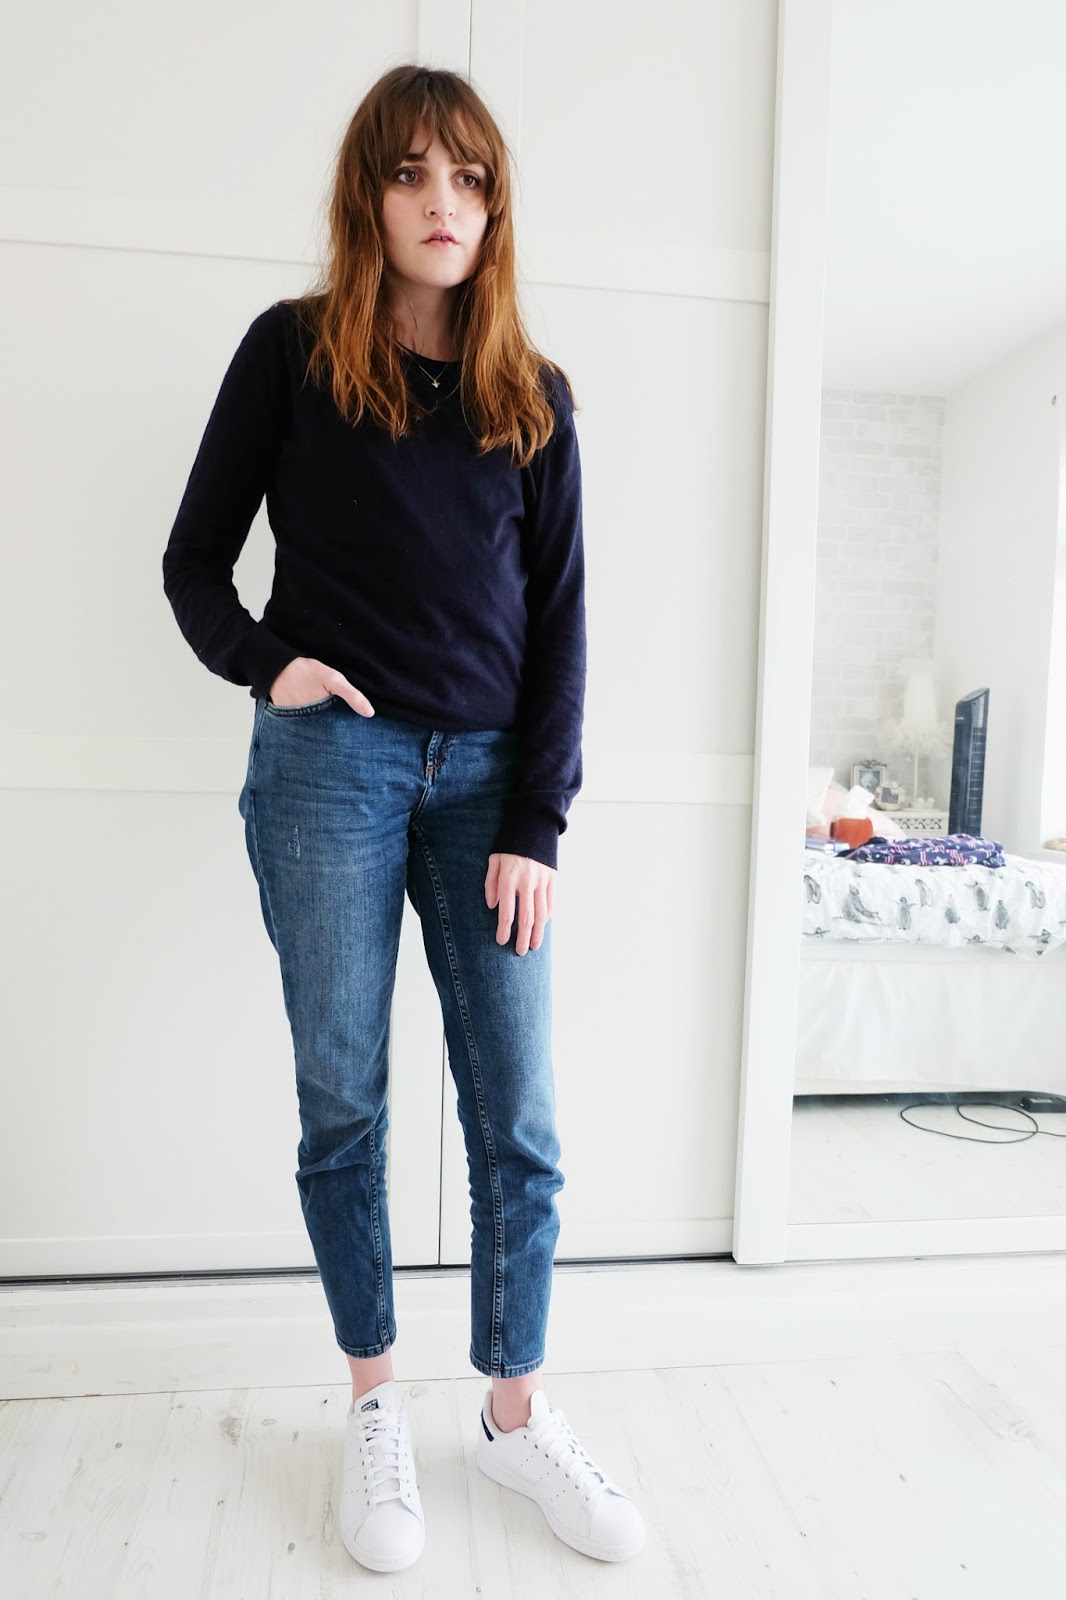 Topshop Baxter Jeans review